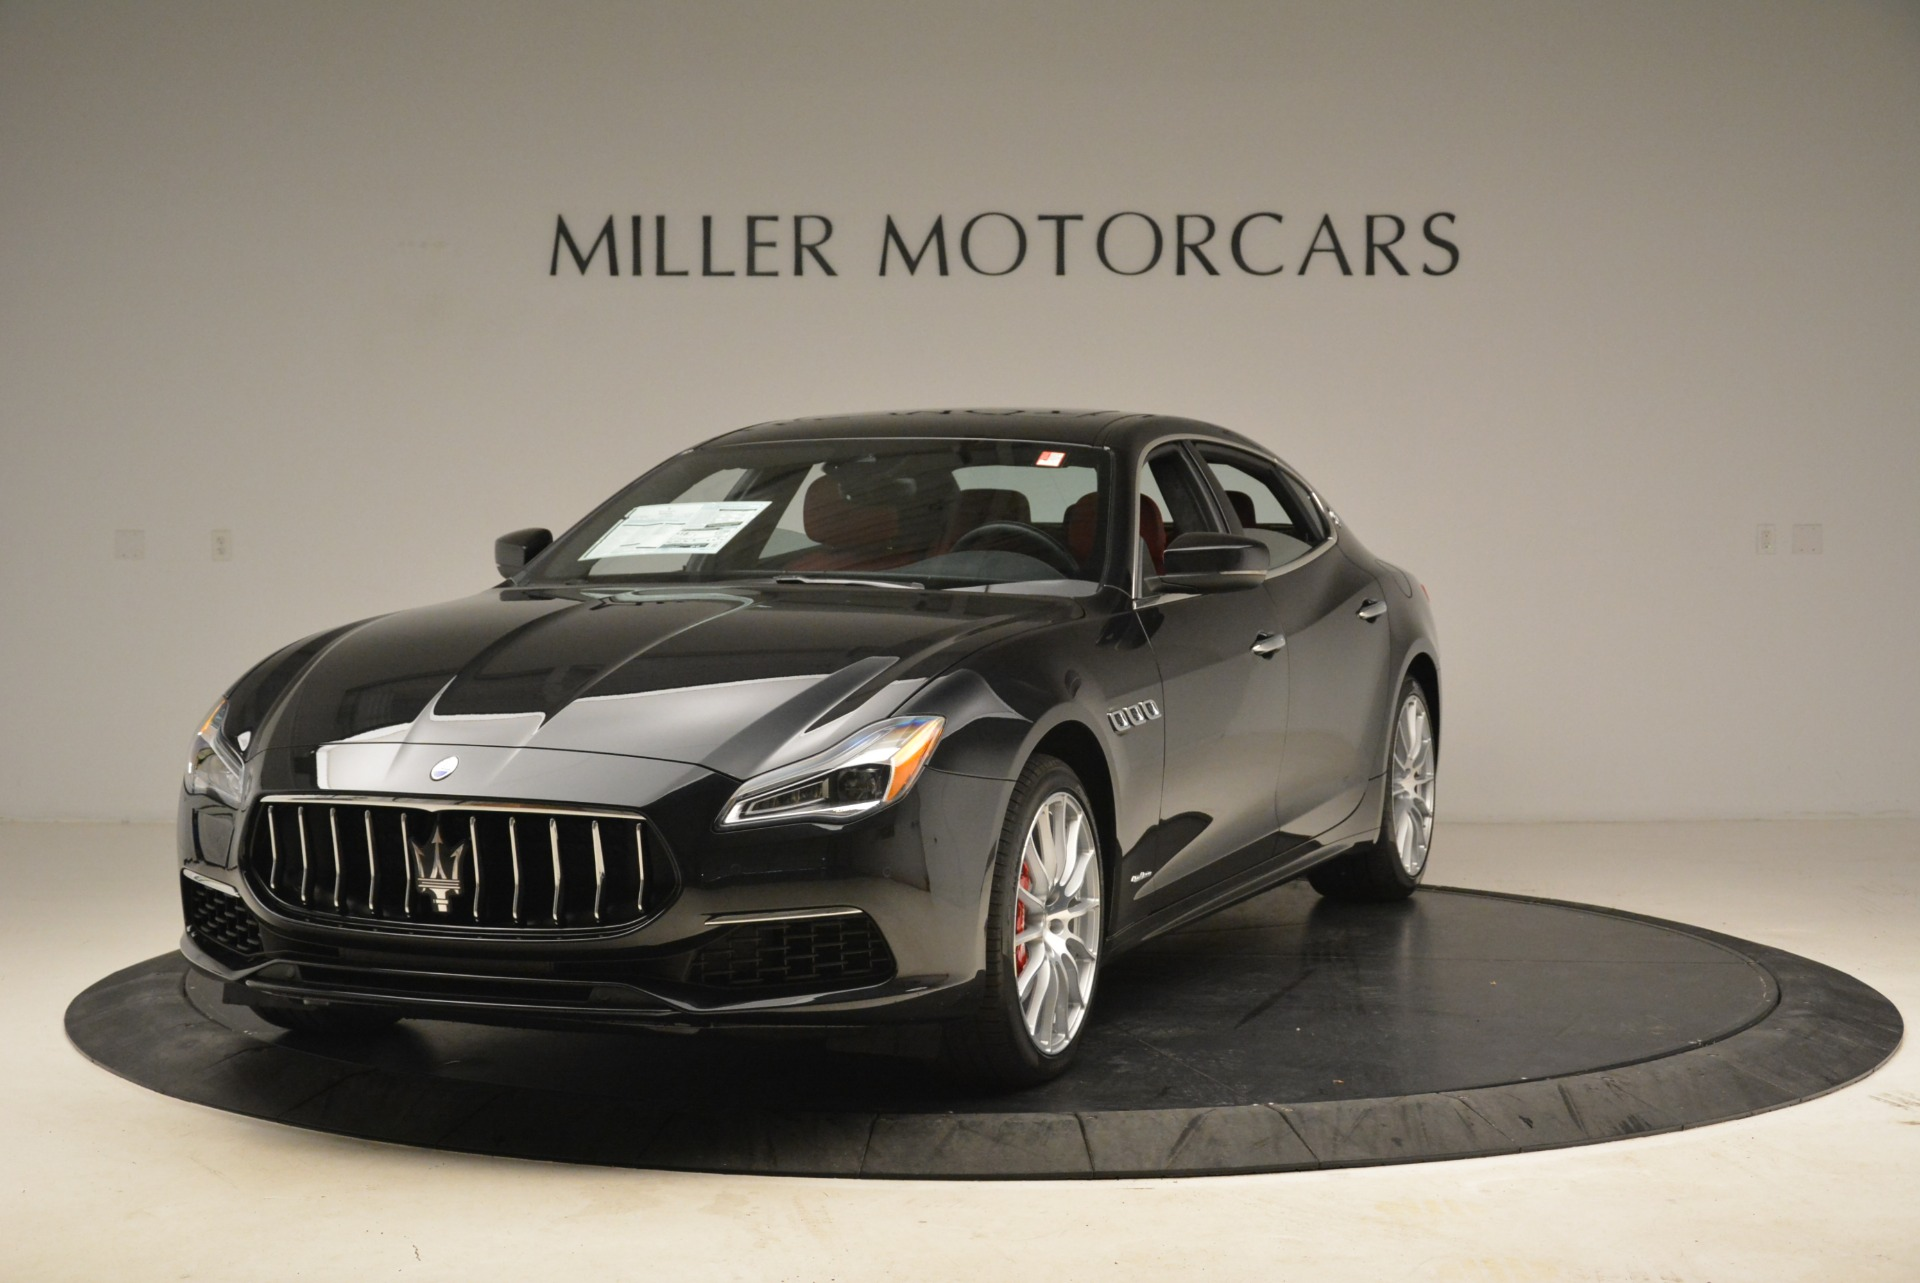 New 2018 Maserati Quattroporte S Q4 GranLusso For Sale In Greenwich, CT 2088_main